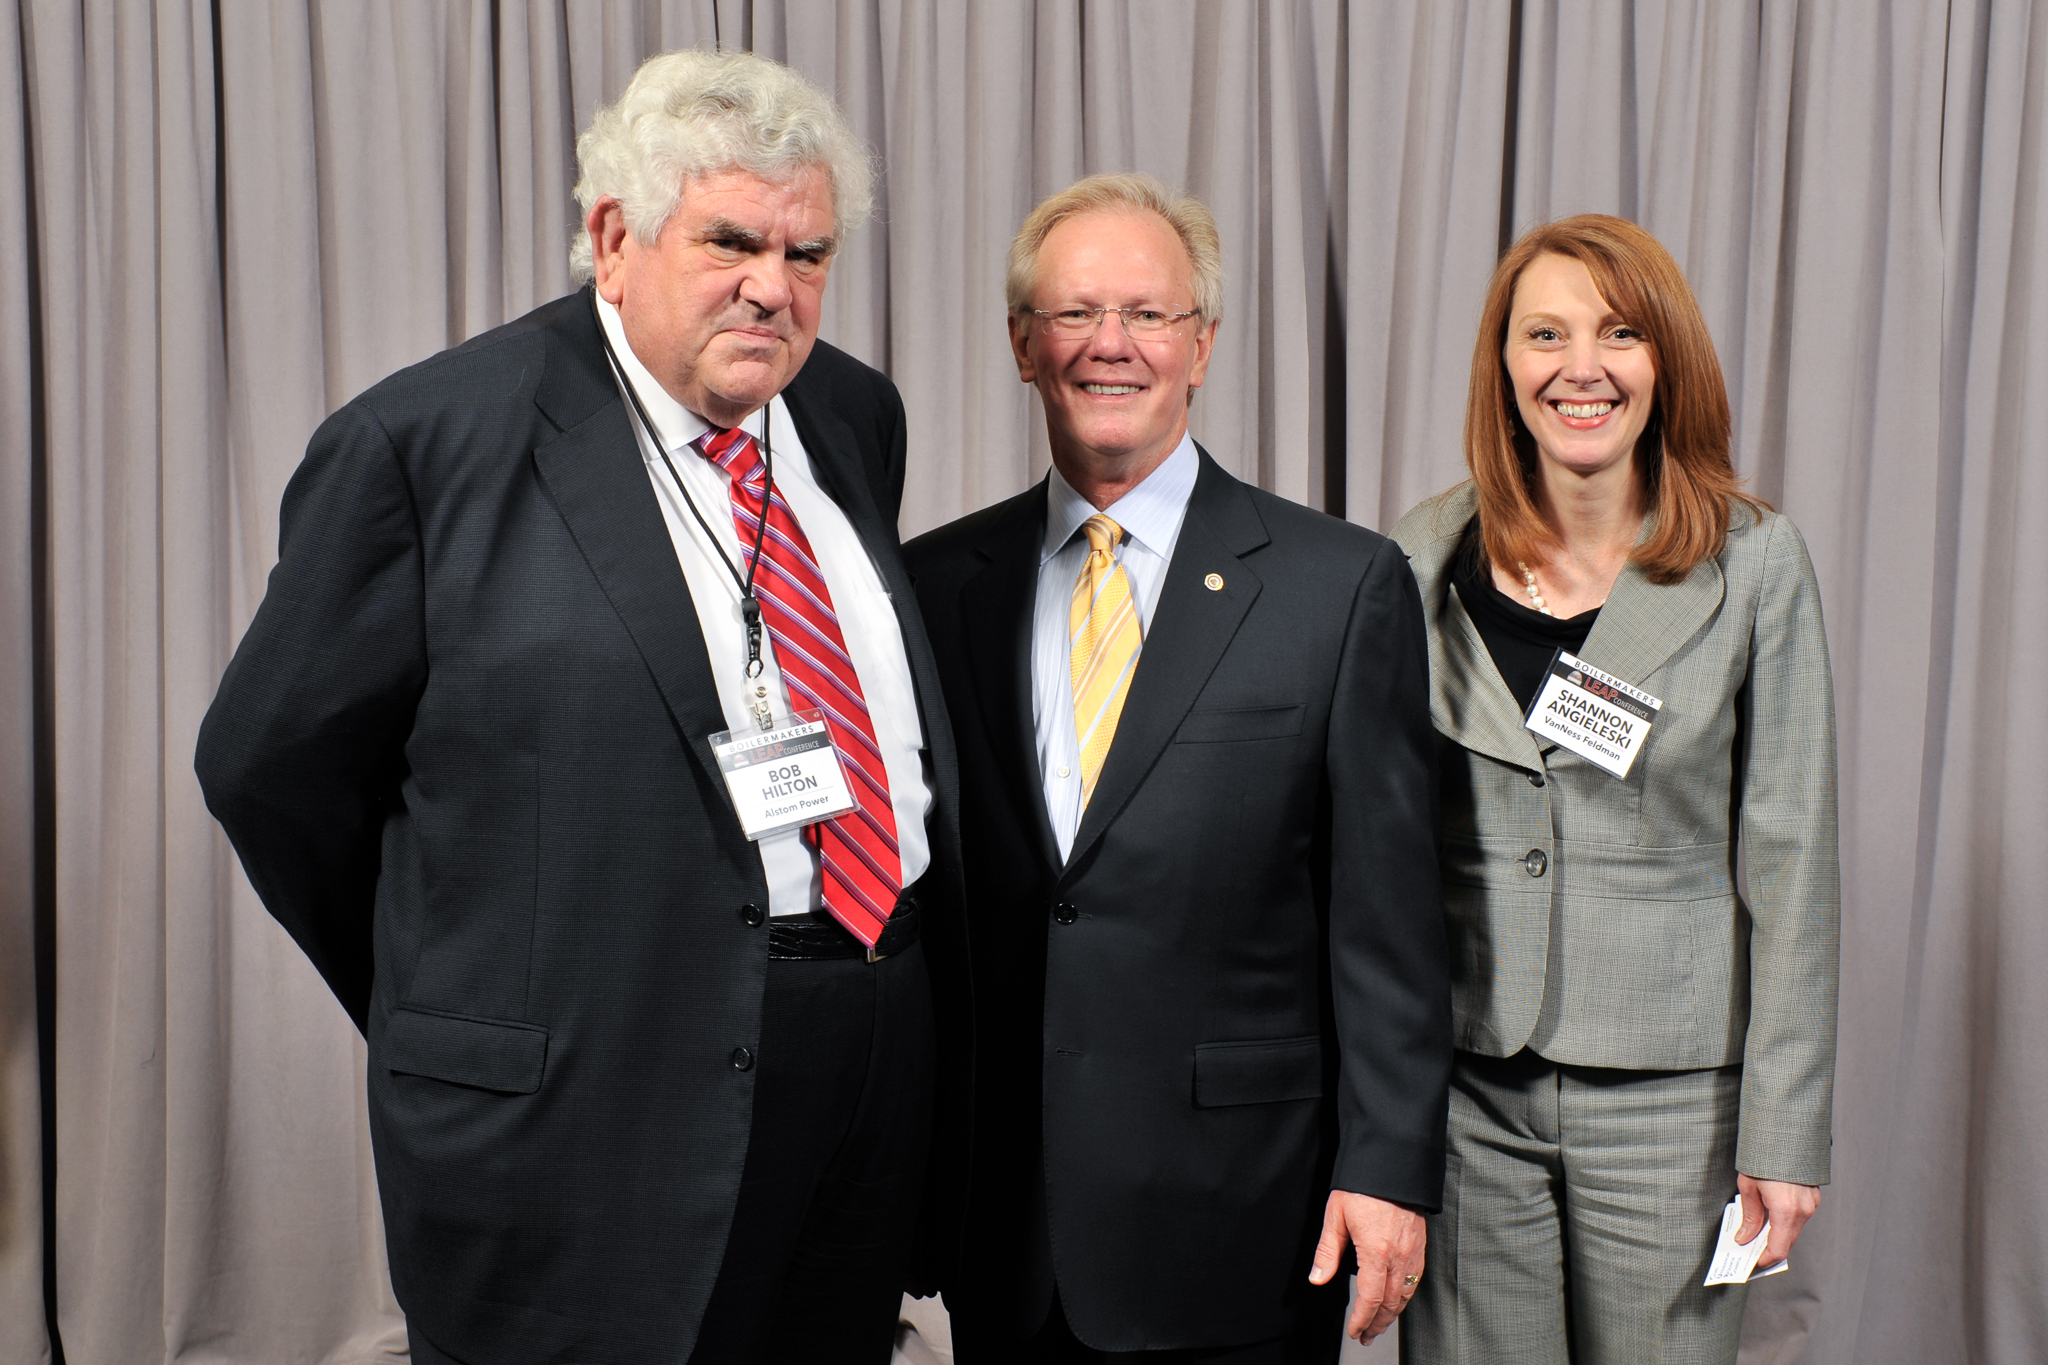 Congressional reception draws large crowd | International Brotherhood of Boilermakers